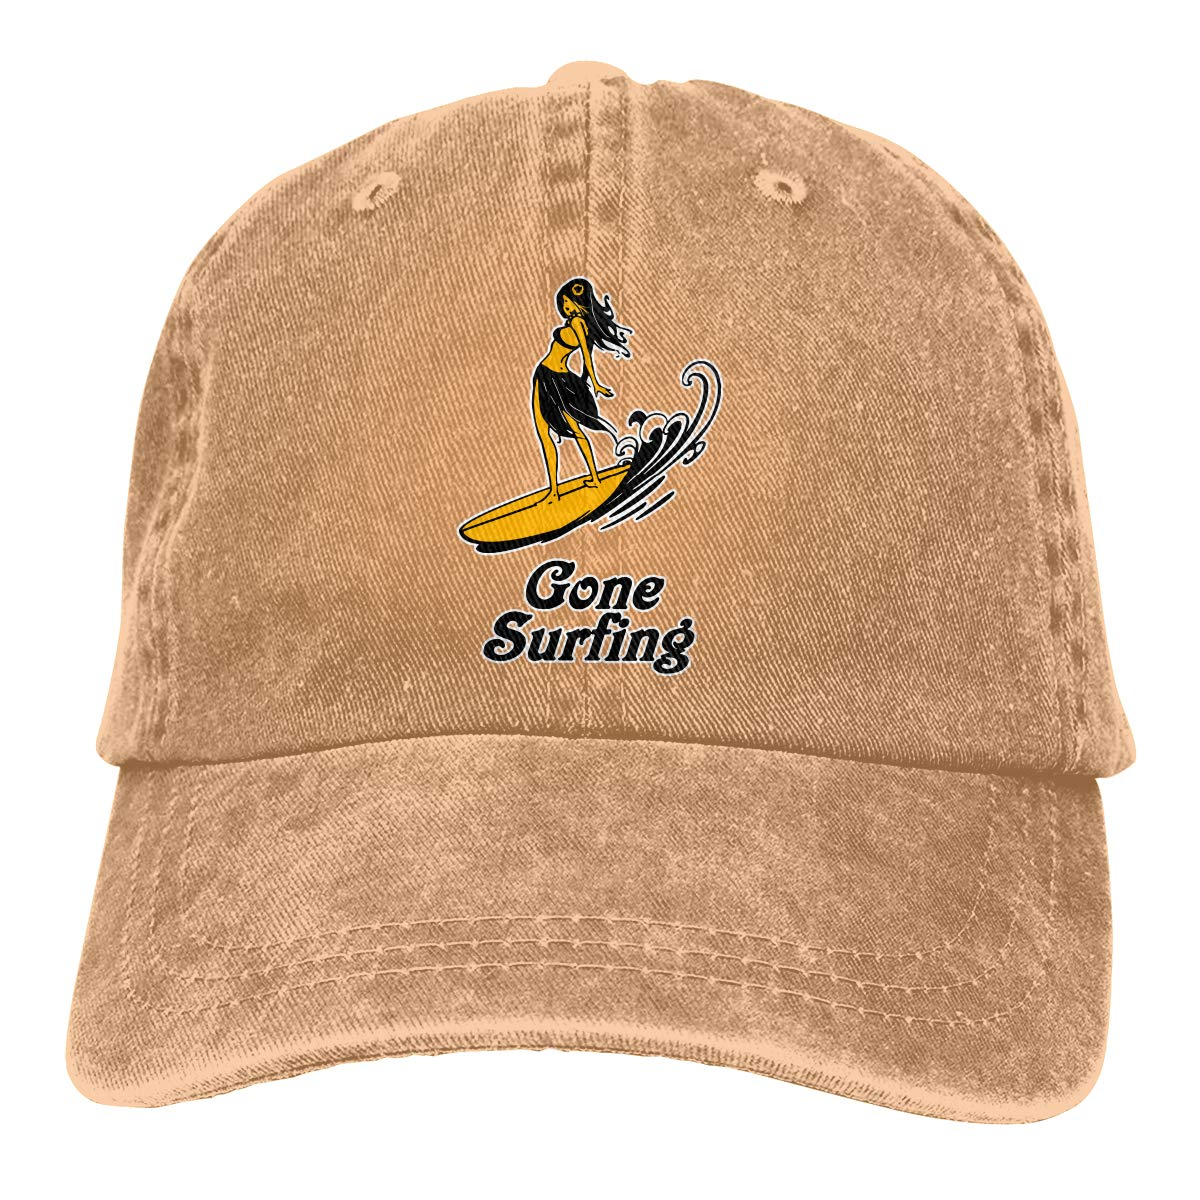 Unisex Gone Surfing Hawaii Surf Vintage Washed Dad Hat Cute Adjustable Baseball Cap